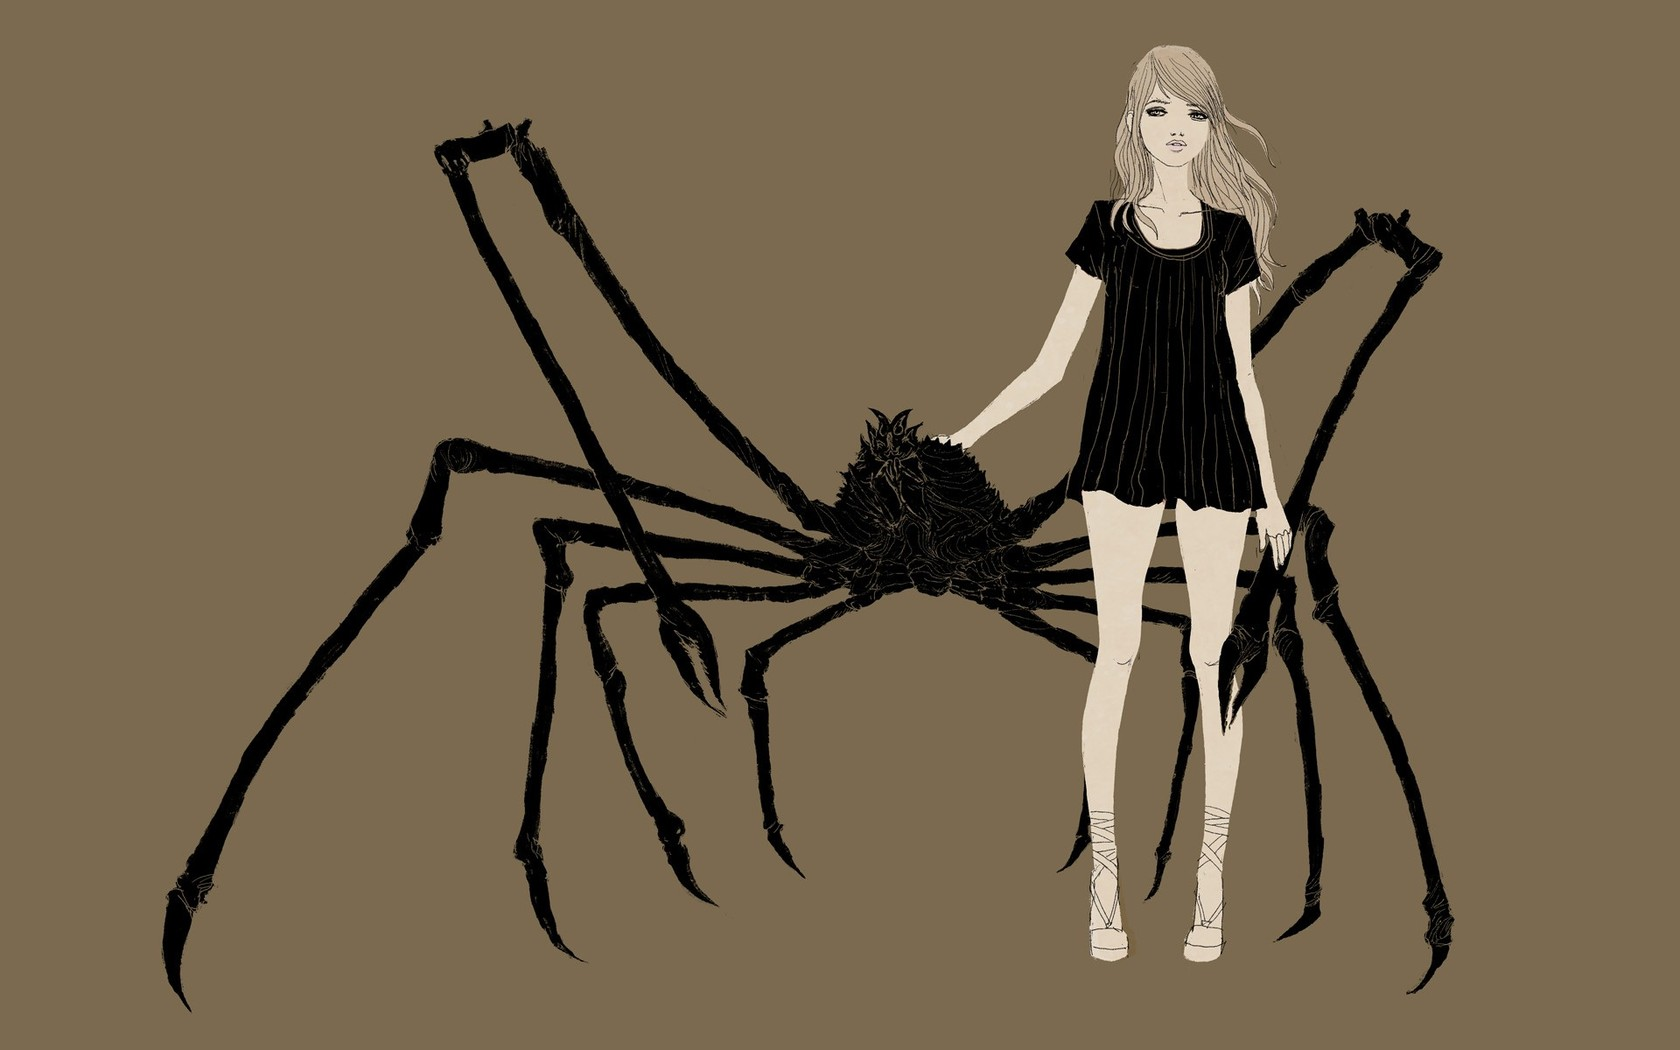 Woman with giant pet spider